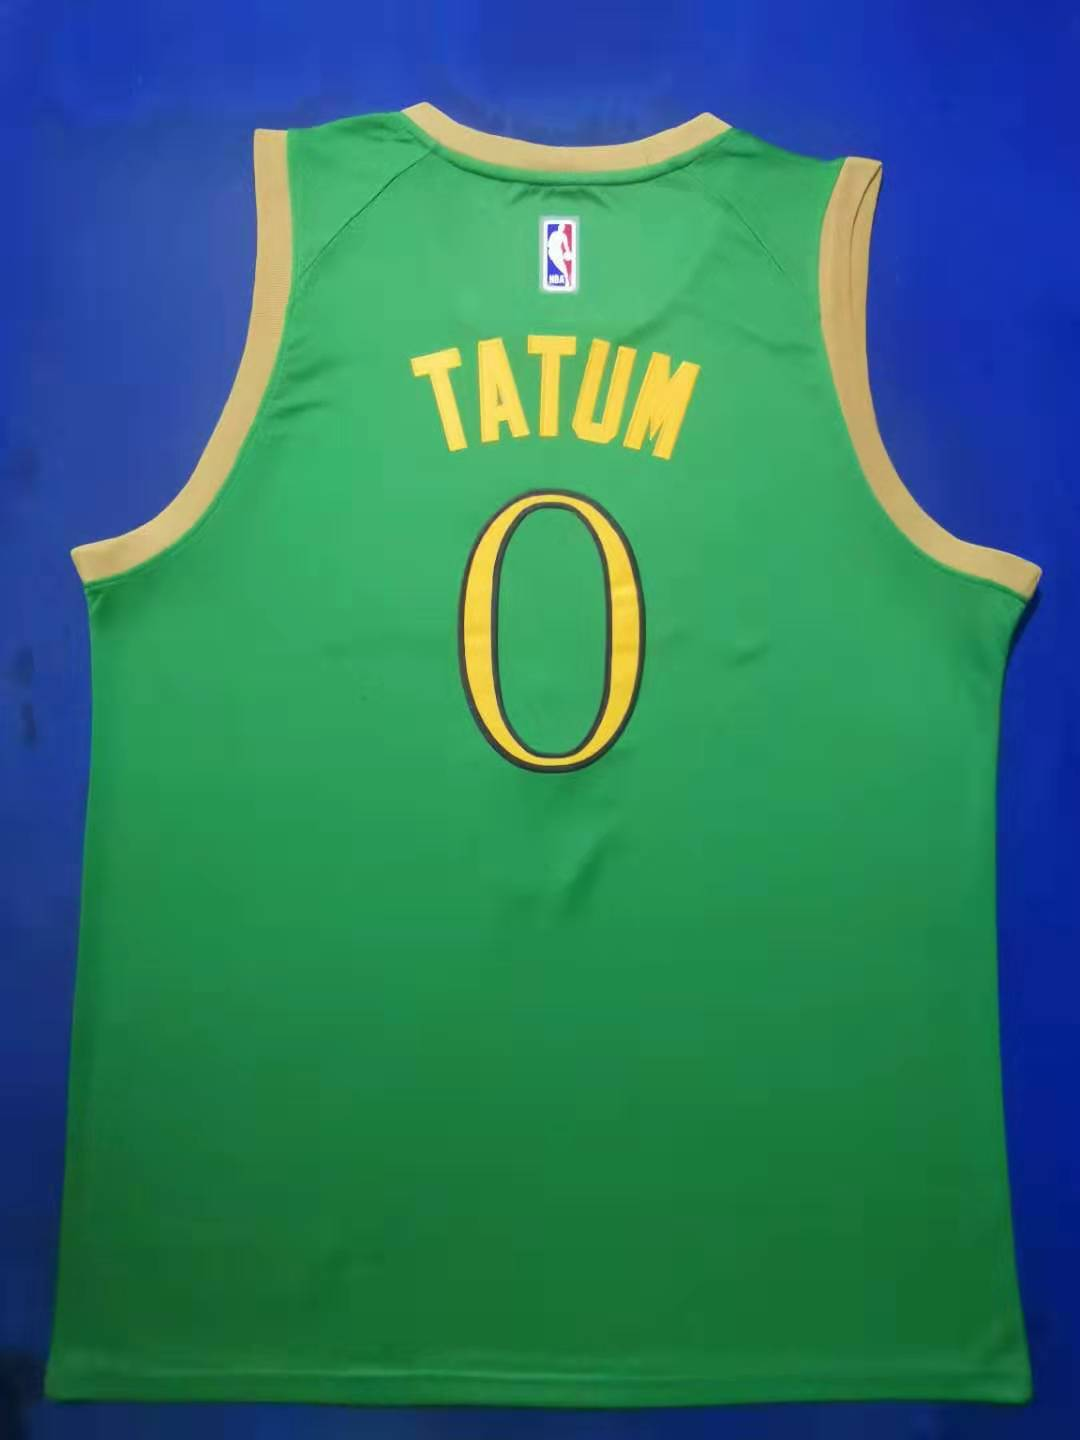 2020 Men Boston Celtics 0 Tatum Green City Edition Game Nike NBA Jerseys new style